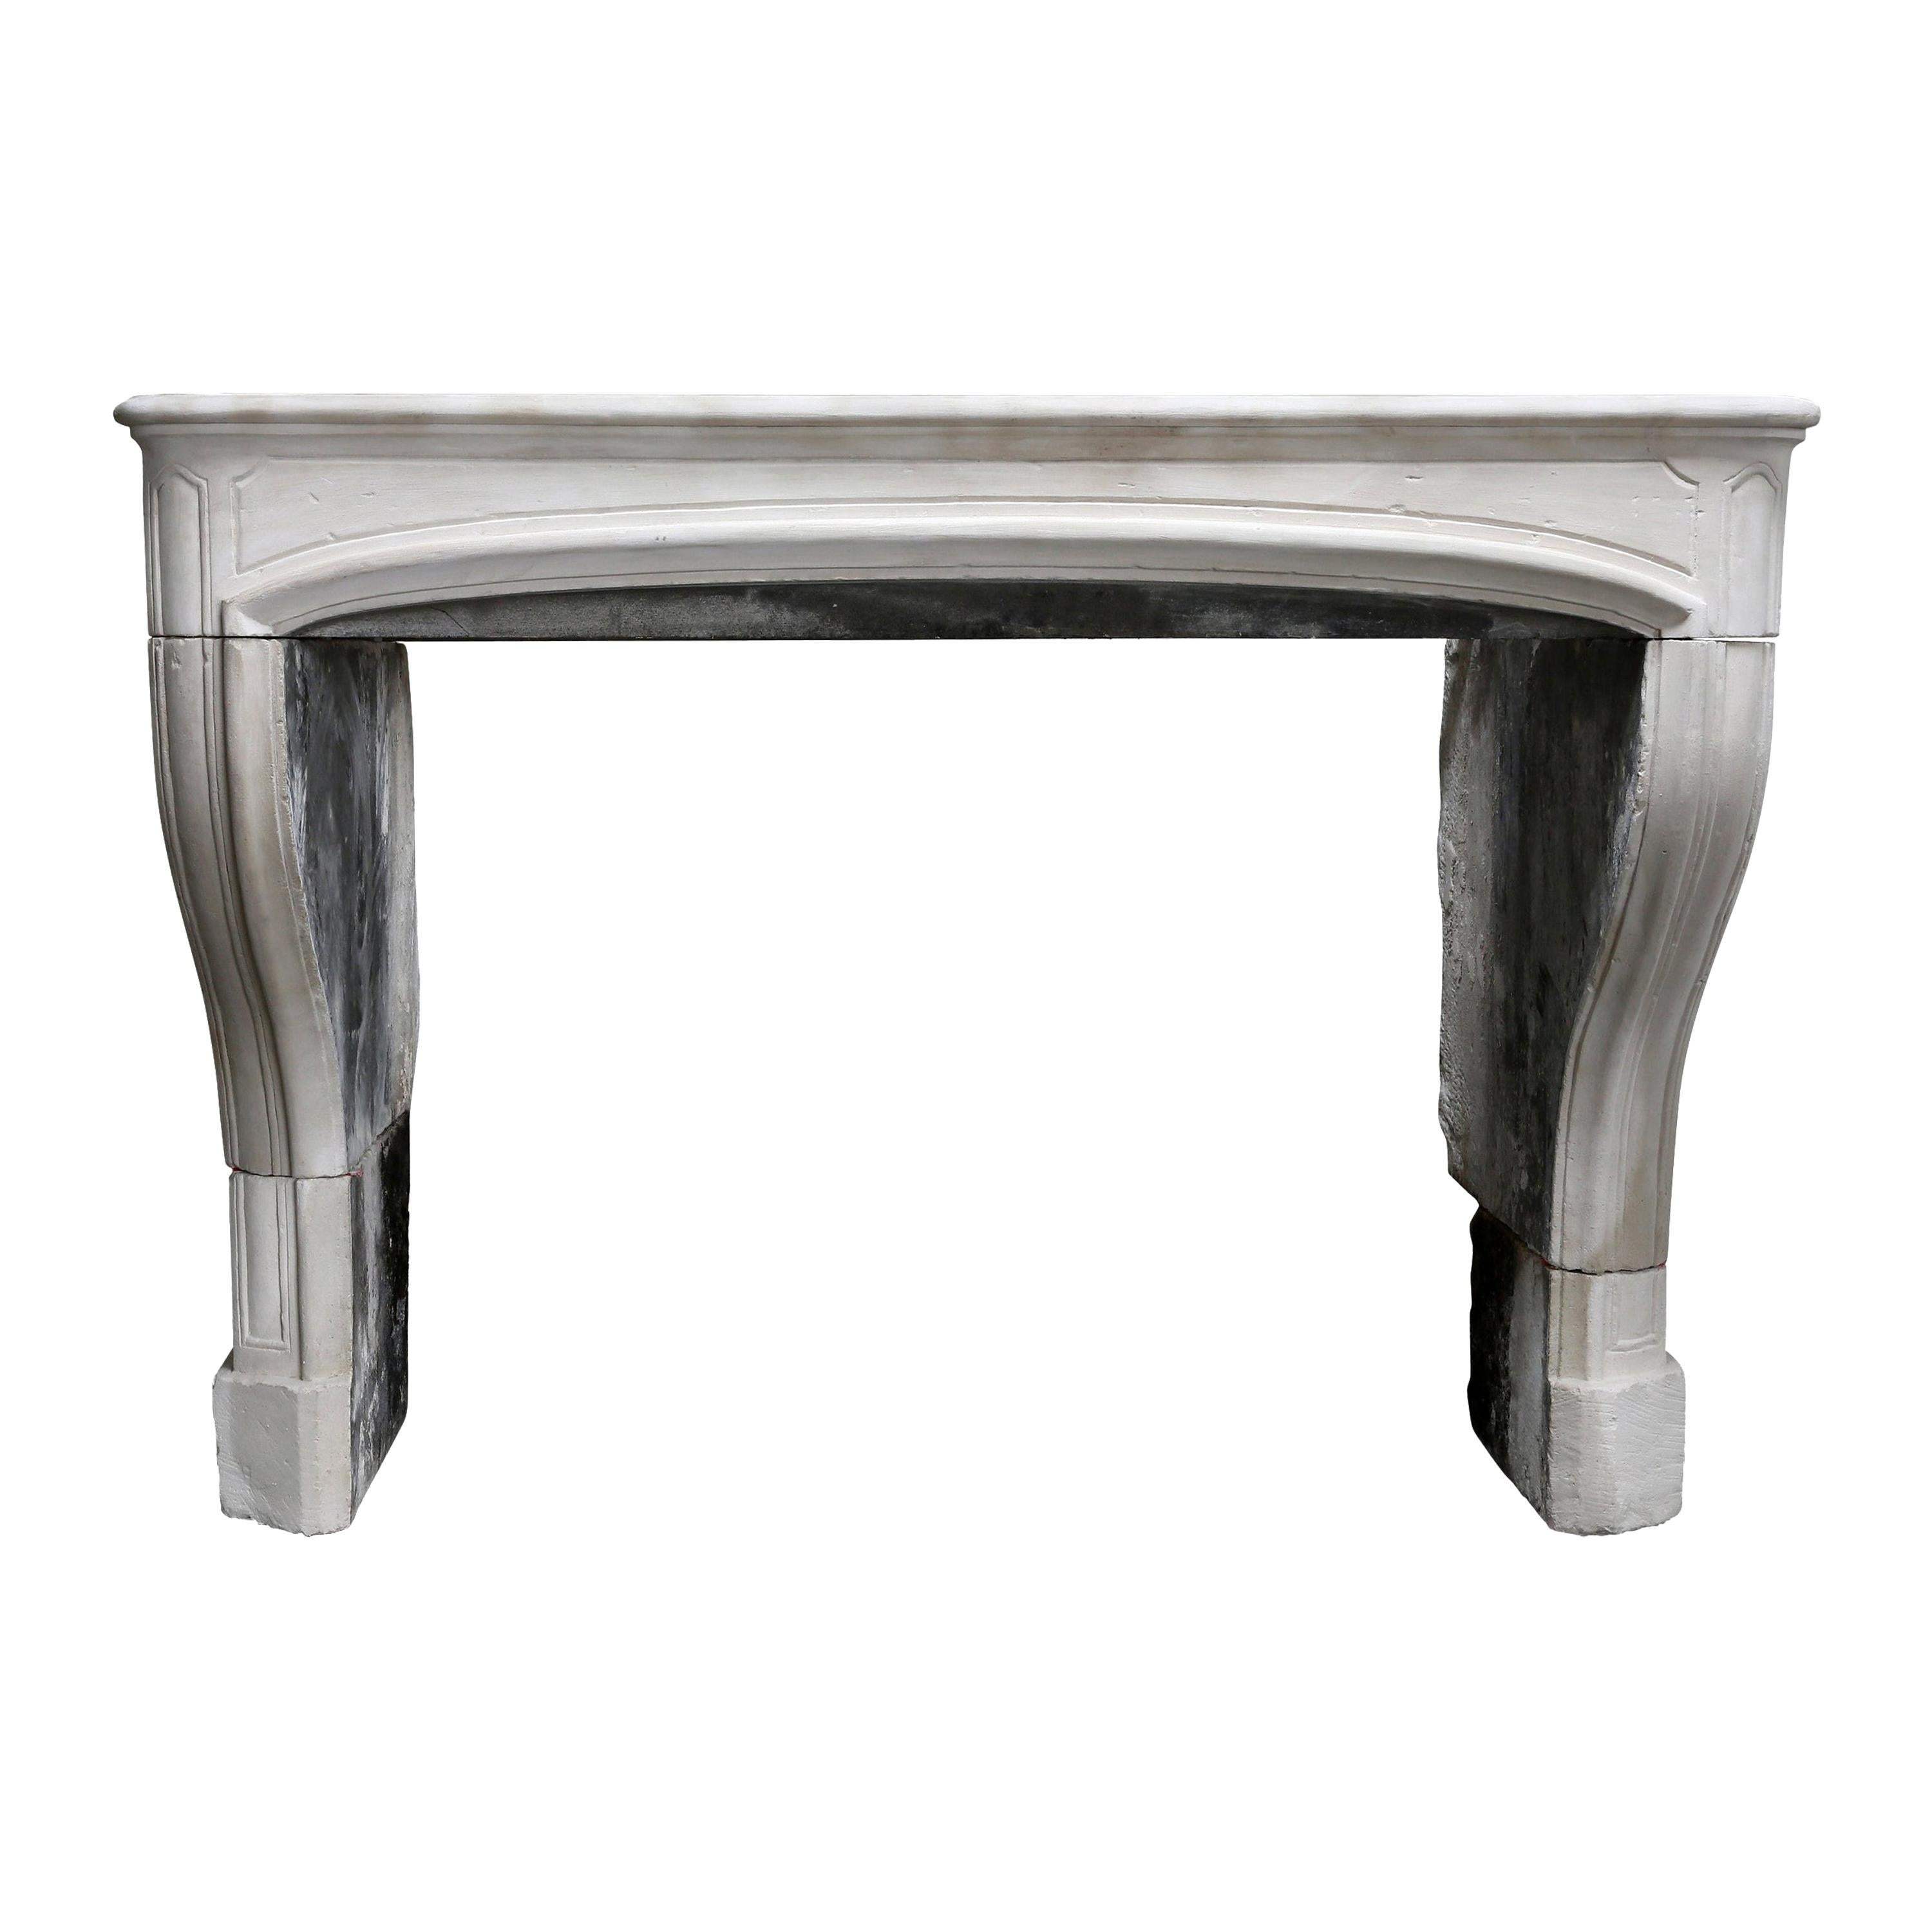 19th Century Antique Mantelpiece of Limestone in Style of Louis XIV